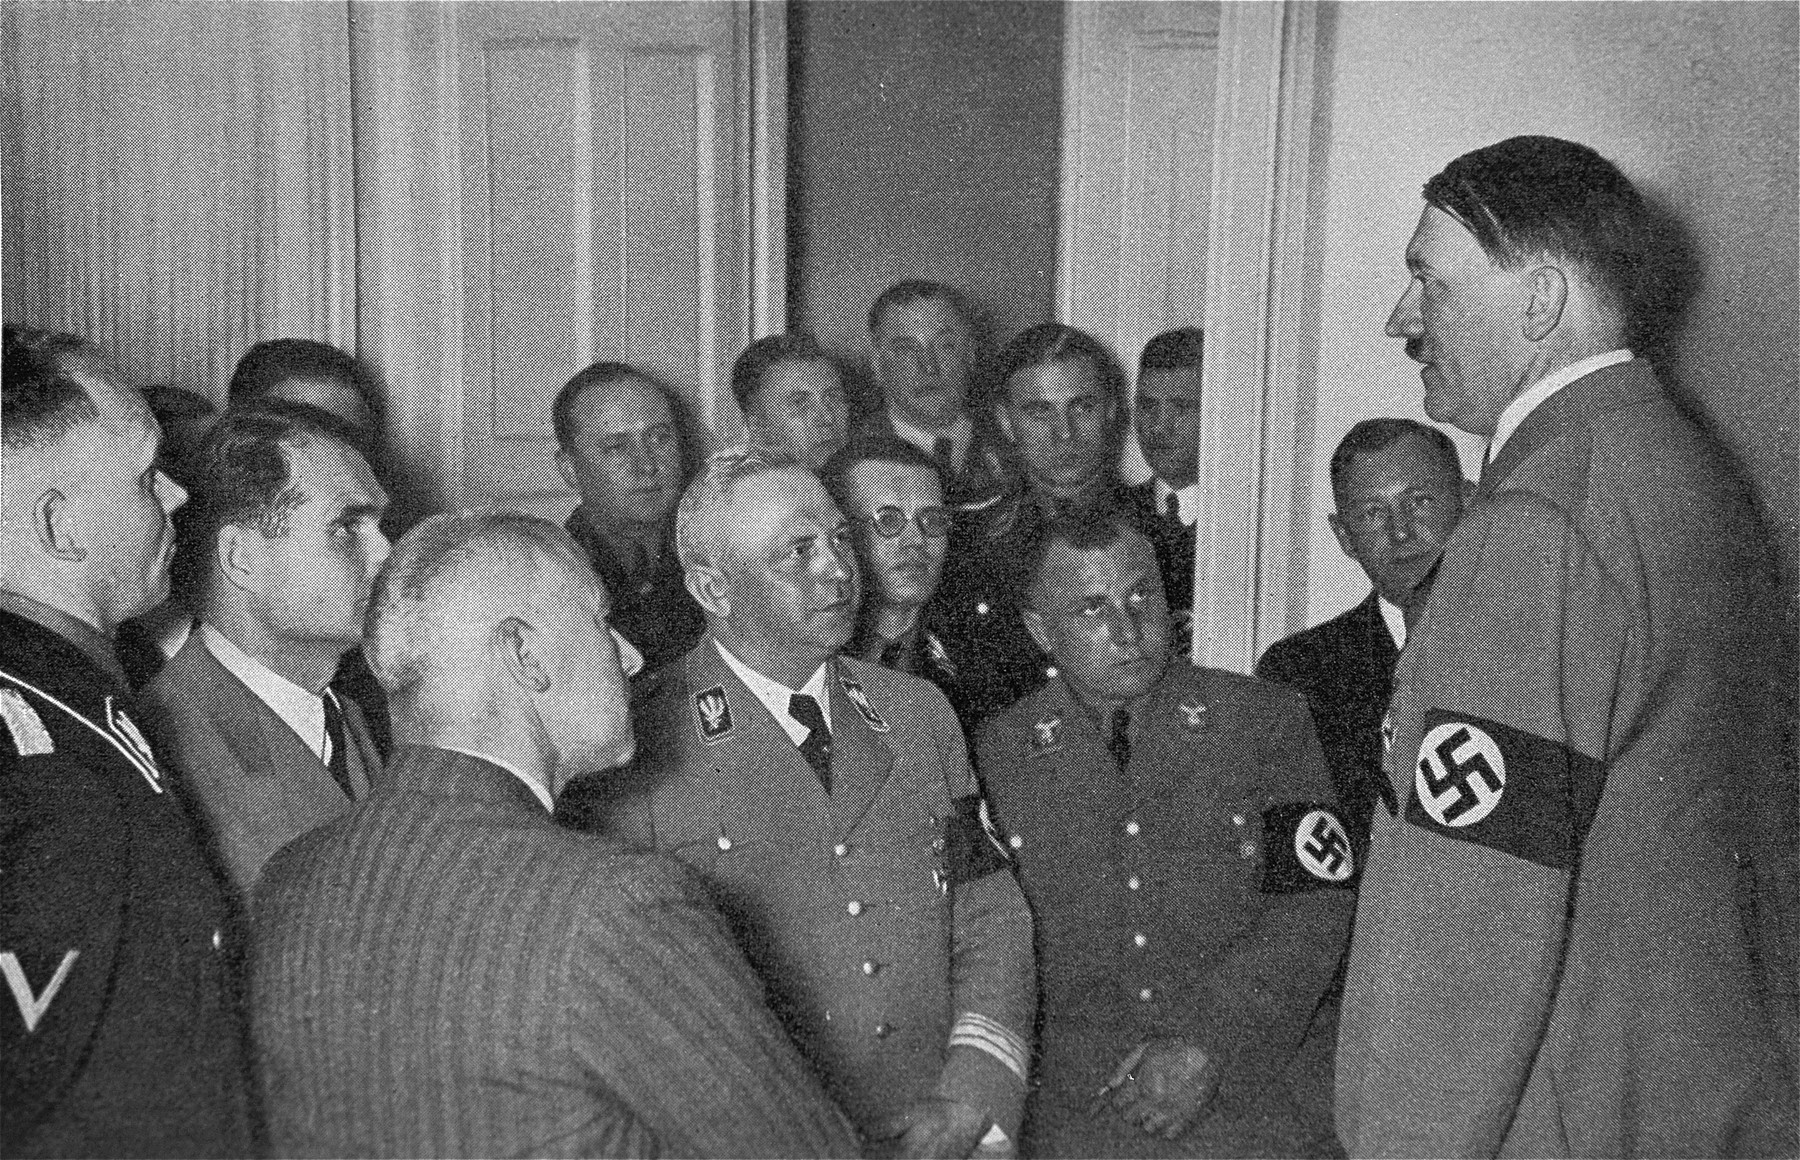 Adolf Hitler speaks to his closest associates on the evening of the Reichstag elections of March 29, 1936.